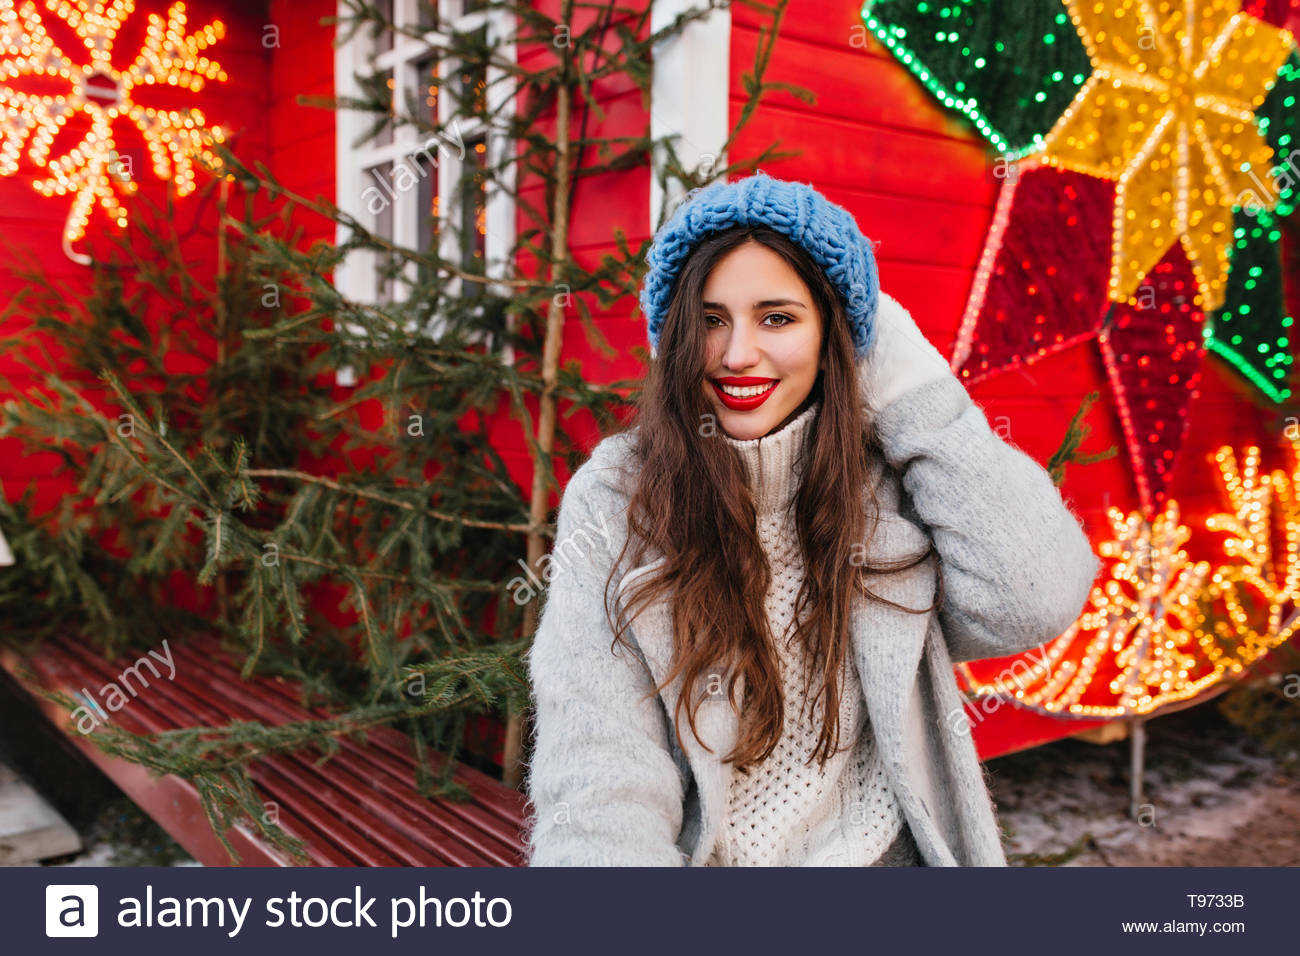 Shy woman with long brown hair spending time on new year fair and posing near green trees. Outdoor photo of spectacular caucasian lady in gray coat standing on red christmas background. - Stock Image